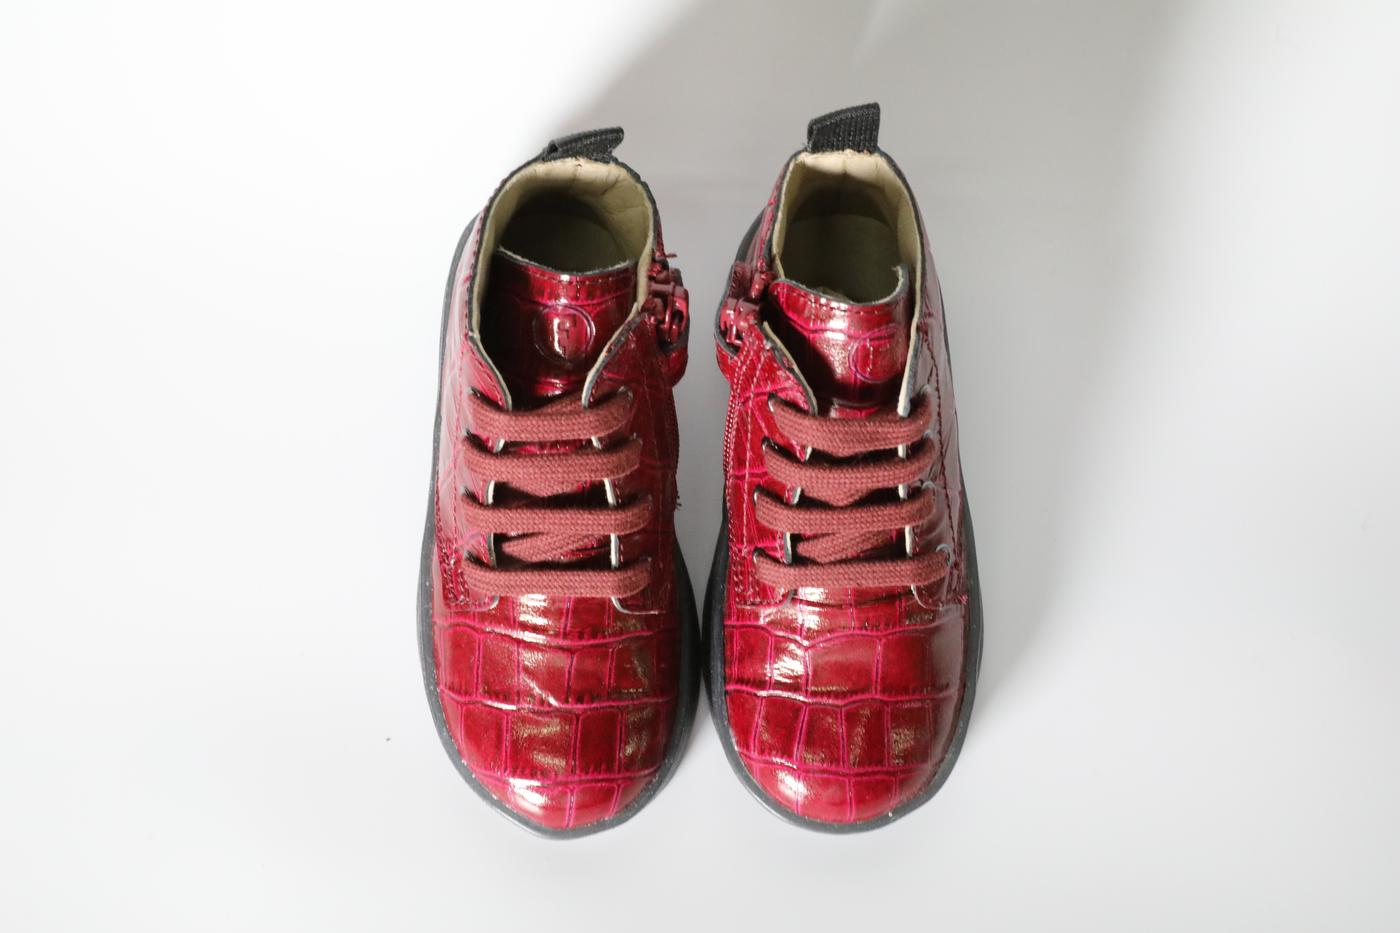 Magenta snakeskin styled kids boots